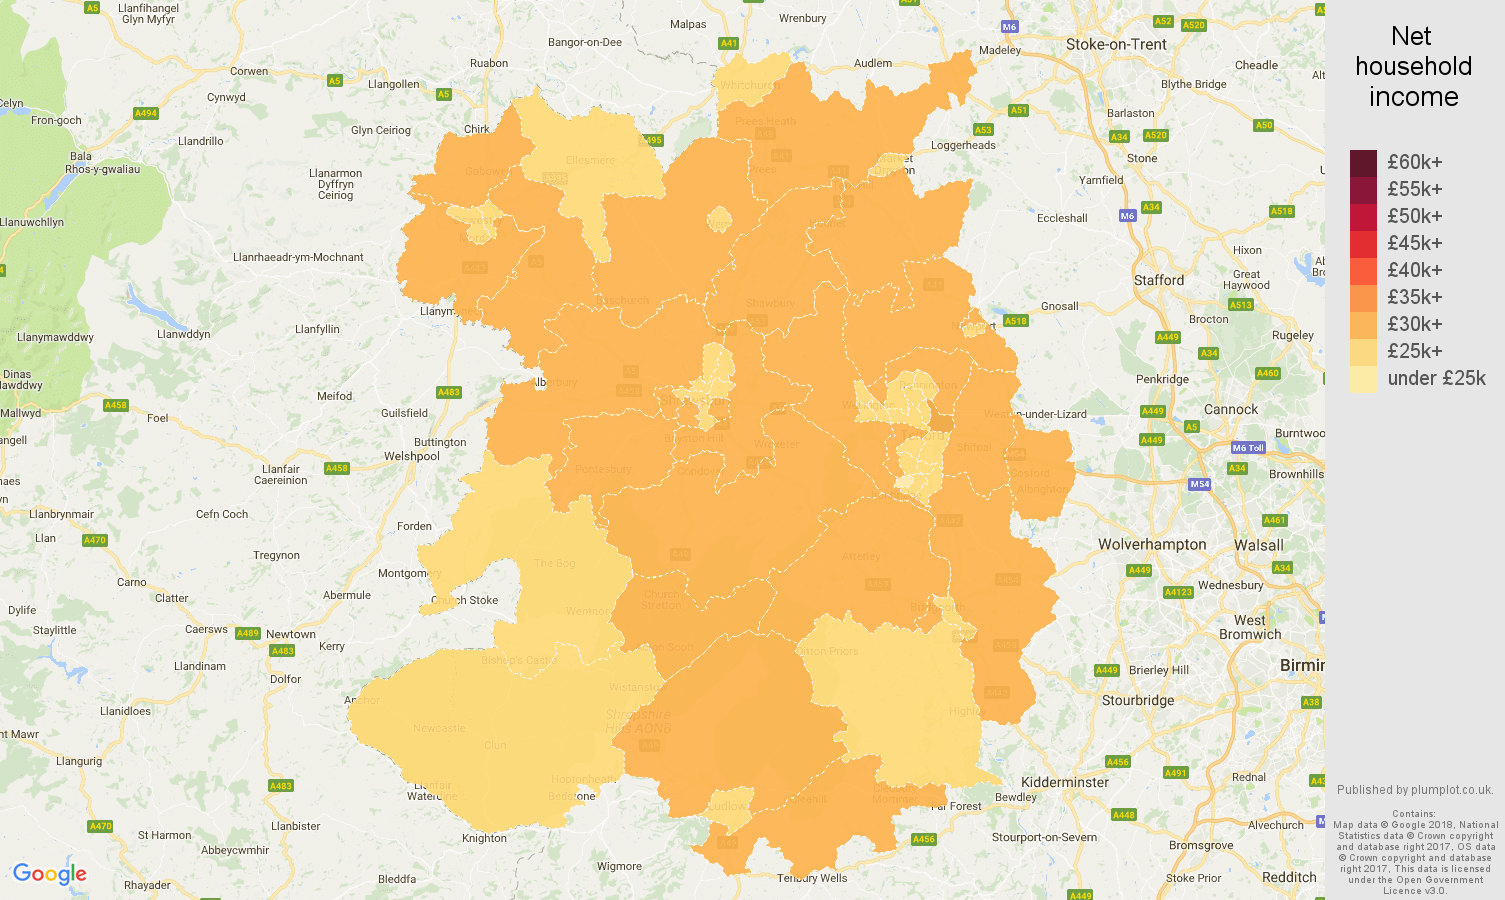 Shropshire net household income map